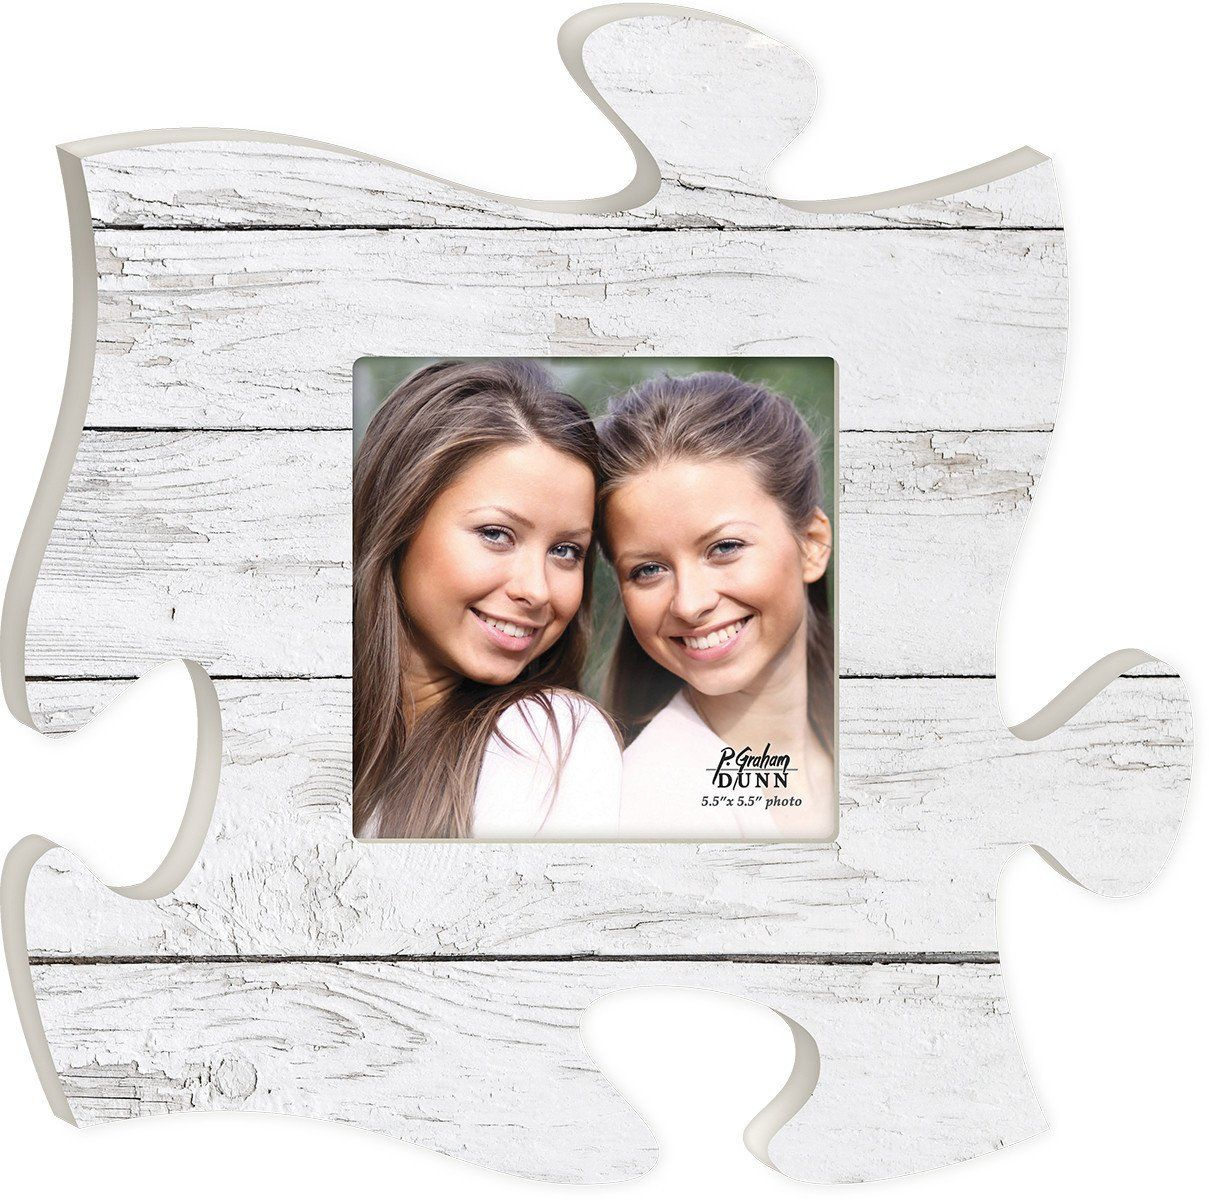 A Puzzle Photo Frame